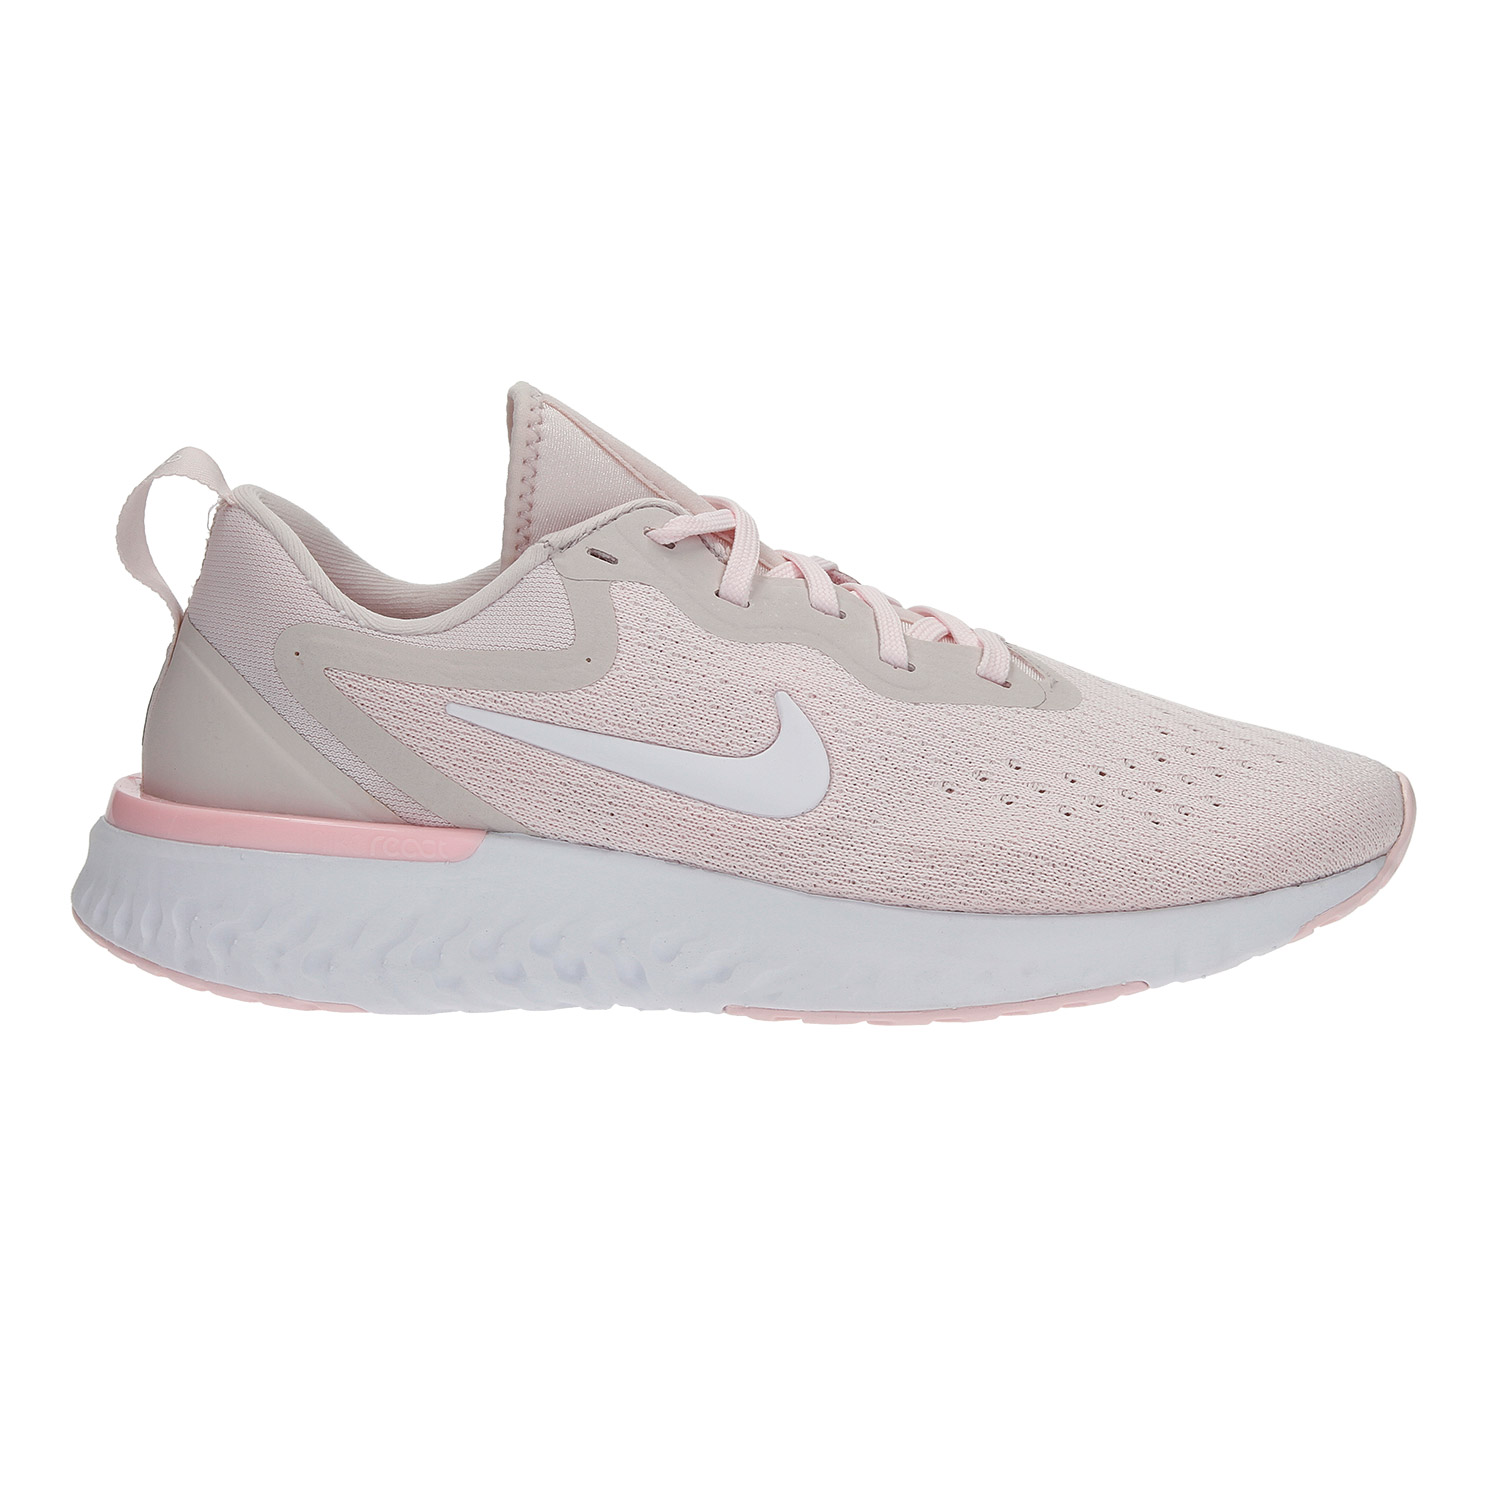 4b34ce88a84 Nike Odyssey React Women s Running Shoes